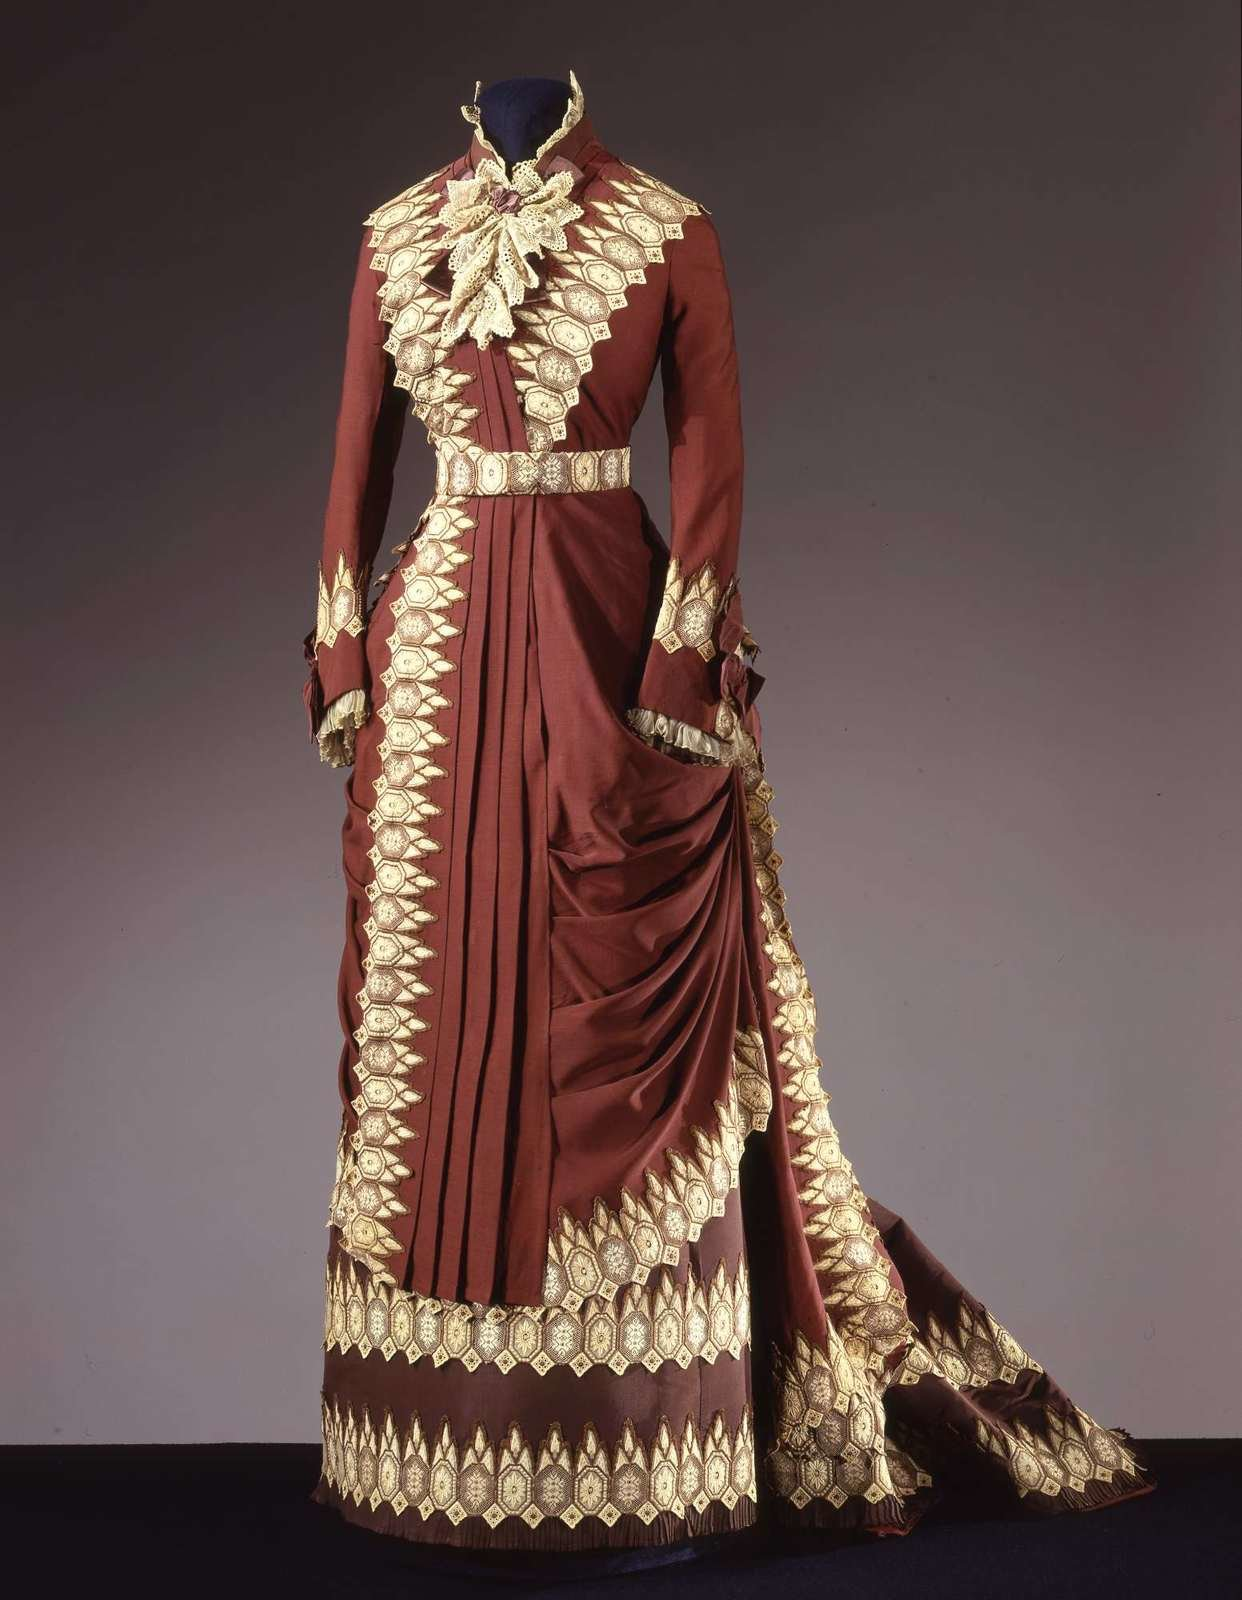 Two-piece dress, 'Princesse' line, ca. 1880, Charles Frederick Worth, Galleria del Costume di Palazzo Pitti, In Copyright